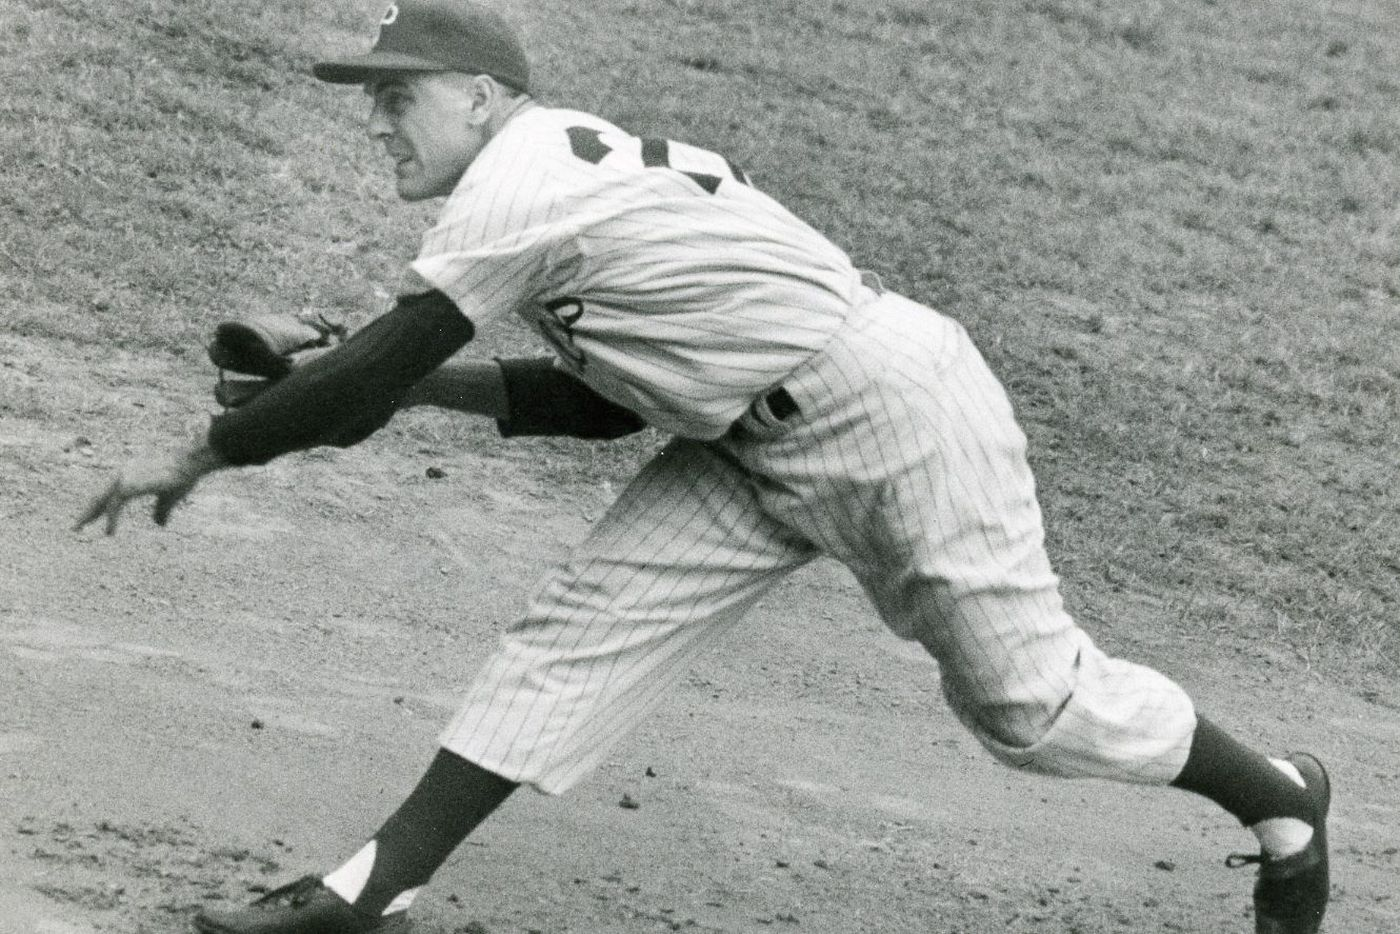 From the archives: Why Phillies pitcher Curt Simmons missed the 1950 World Series is hard to fathom today